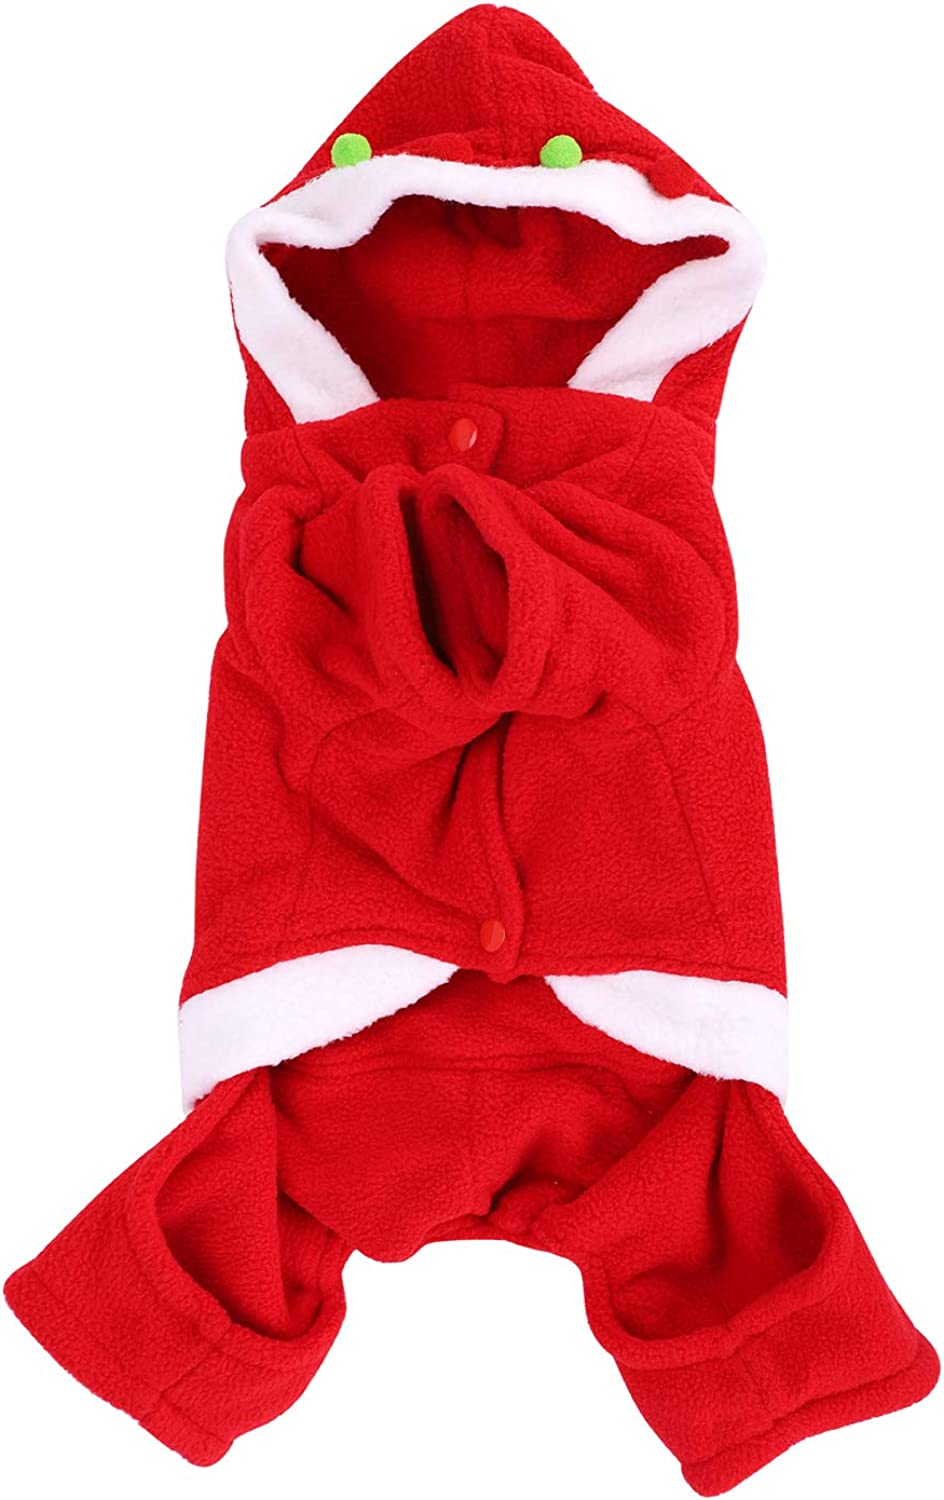 Pet Christmas Costumes Santa Dog Clothes Hoodied for Small Dogs Puppy Kitty Hoodies Pet Winter Sweatshirt Small Dog Christmas Warm Puppy Cat Clothing Coat Costume Apparel Hooded Puppy Santa Suit